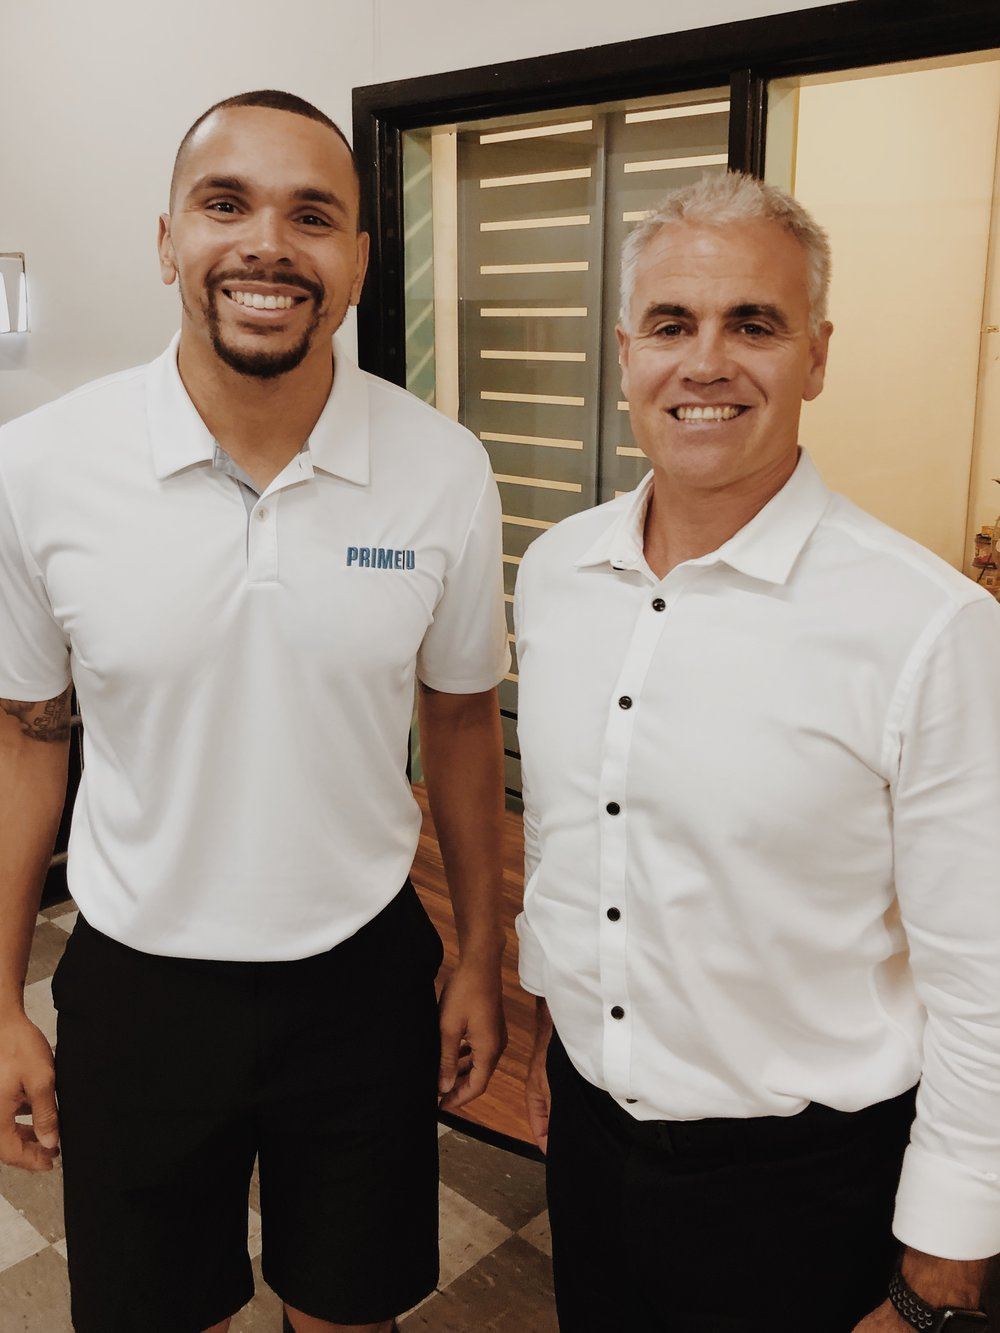 Pictured: Jarrod Barnes, Founder & CEO of Prime U along with Tony McFayden, Player Wellbeing & Education Manager of the NRL.